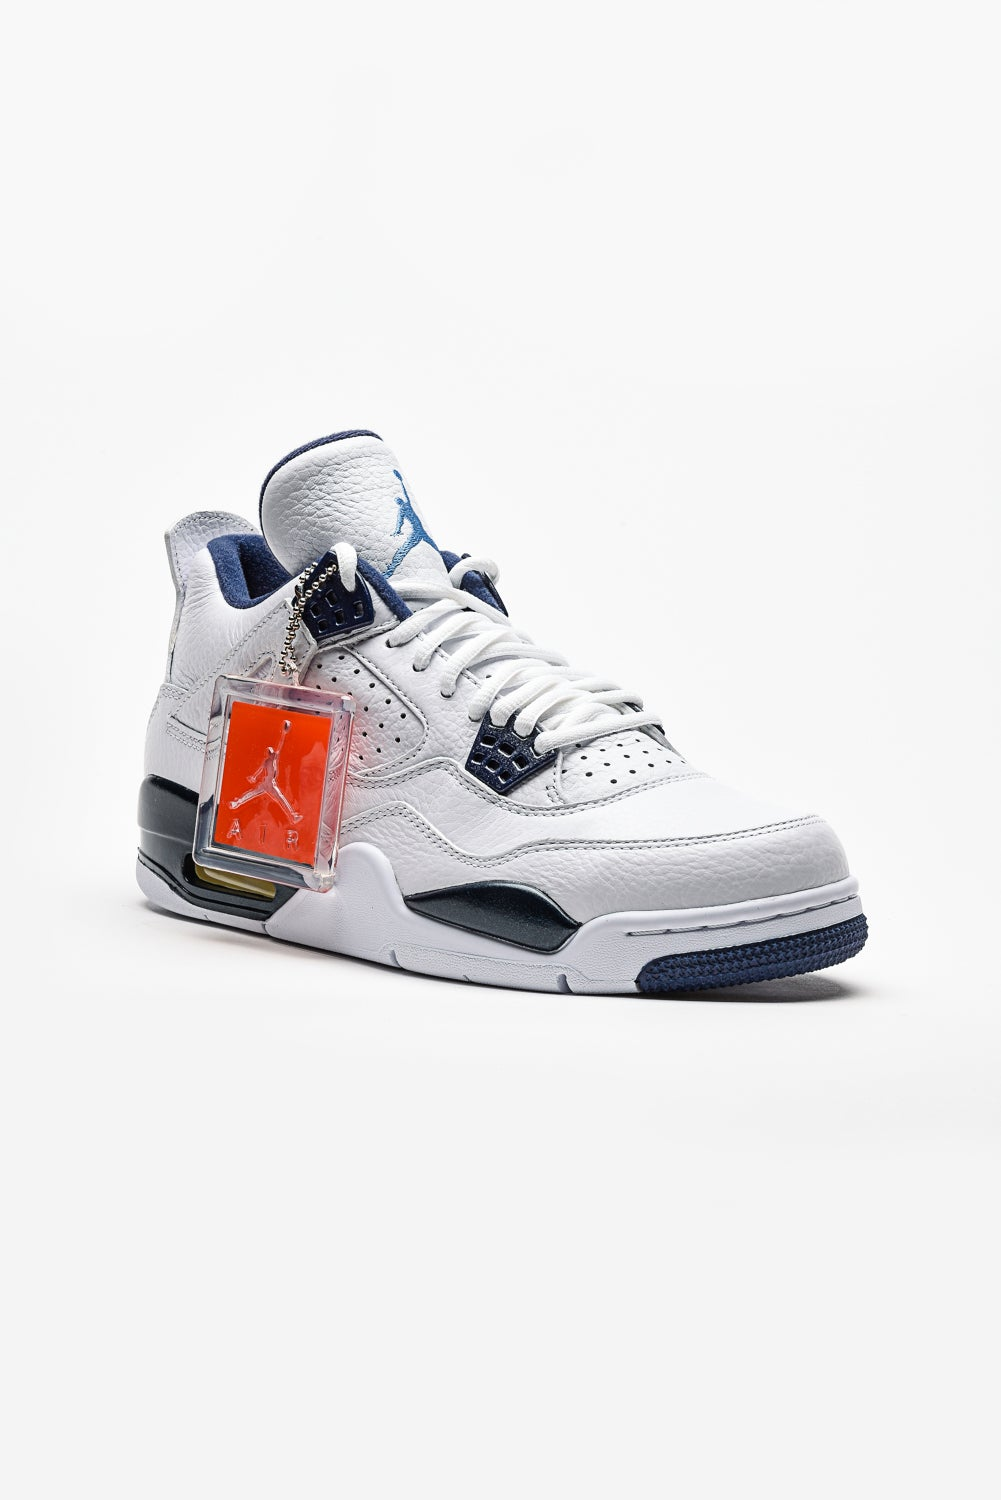 1d654d6630a Fresh Kicks Houston — Air Jordan 4 Retro - Columbia